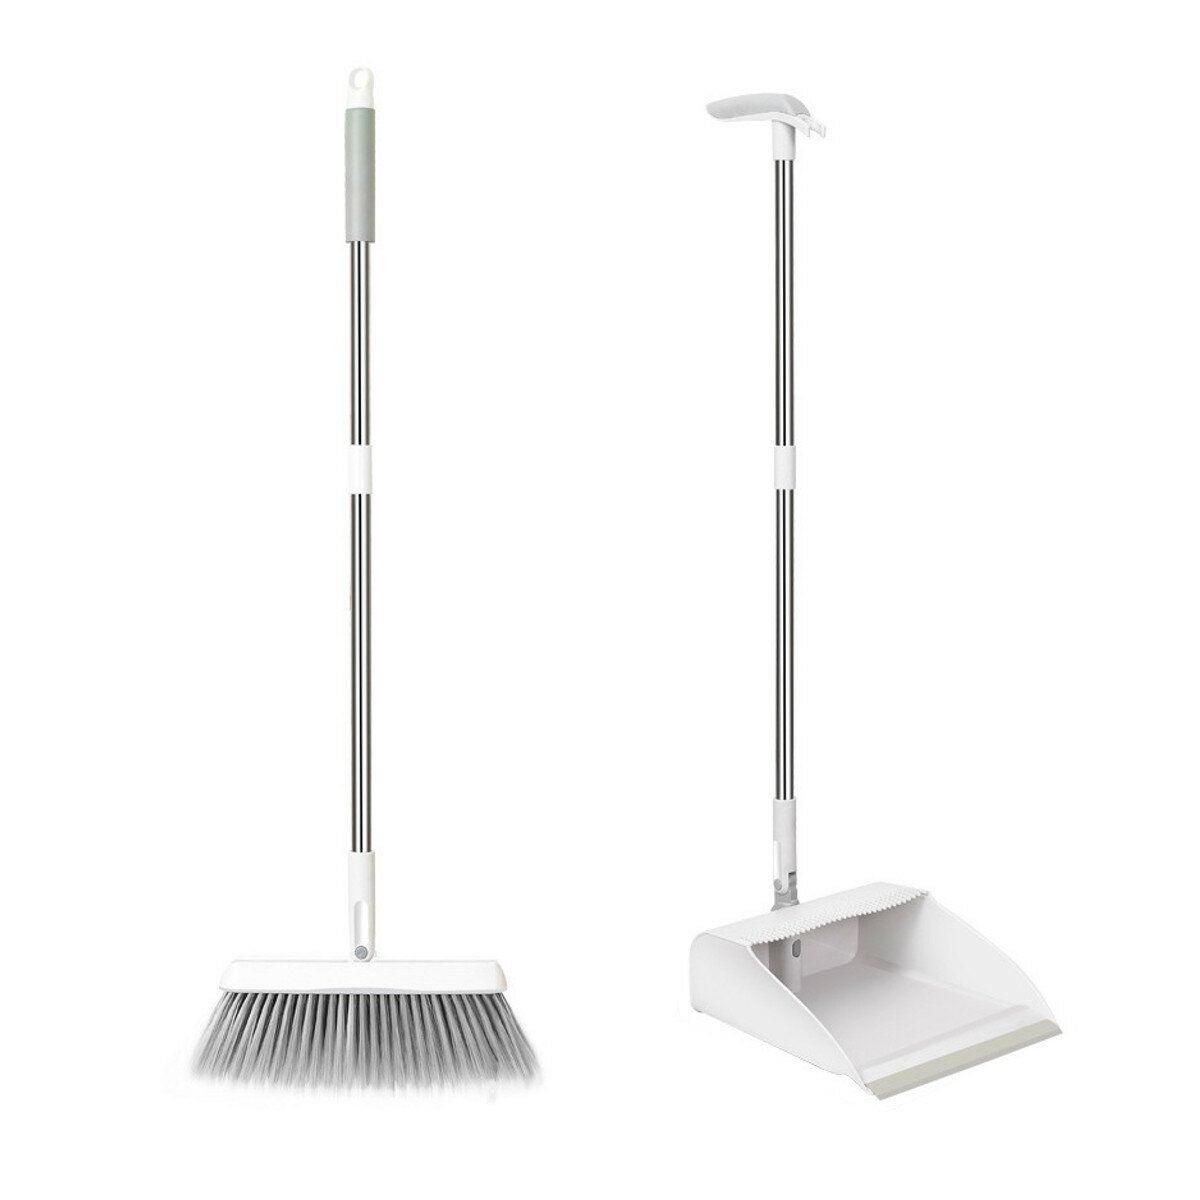 Foldable Automatic Rebound Household Dustpan Broom Brush Set Cleaning Tools Hot